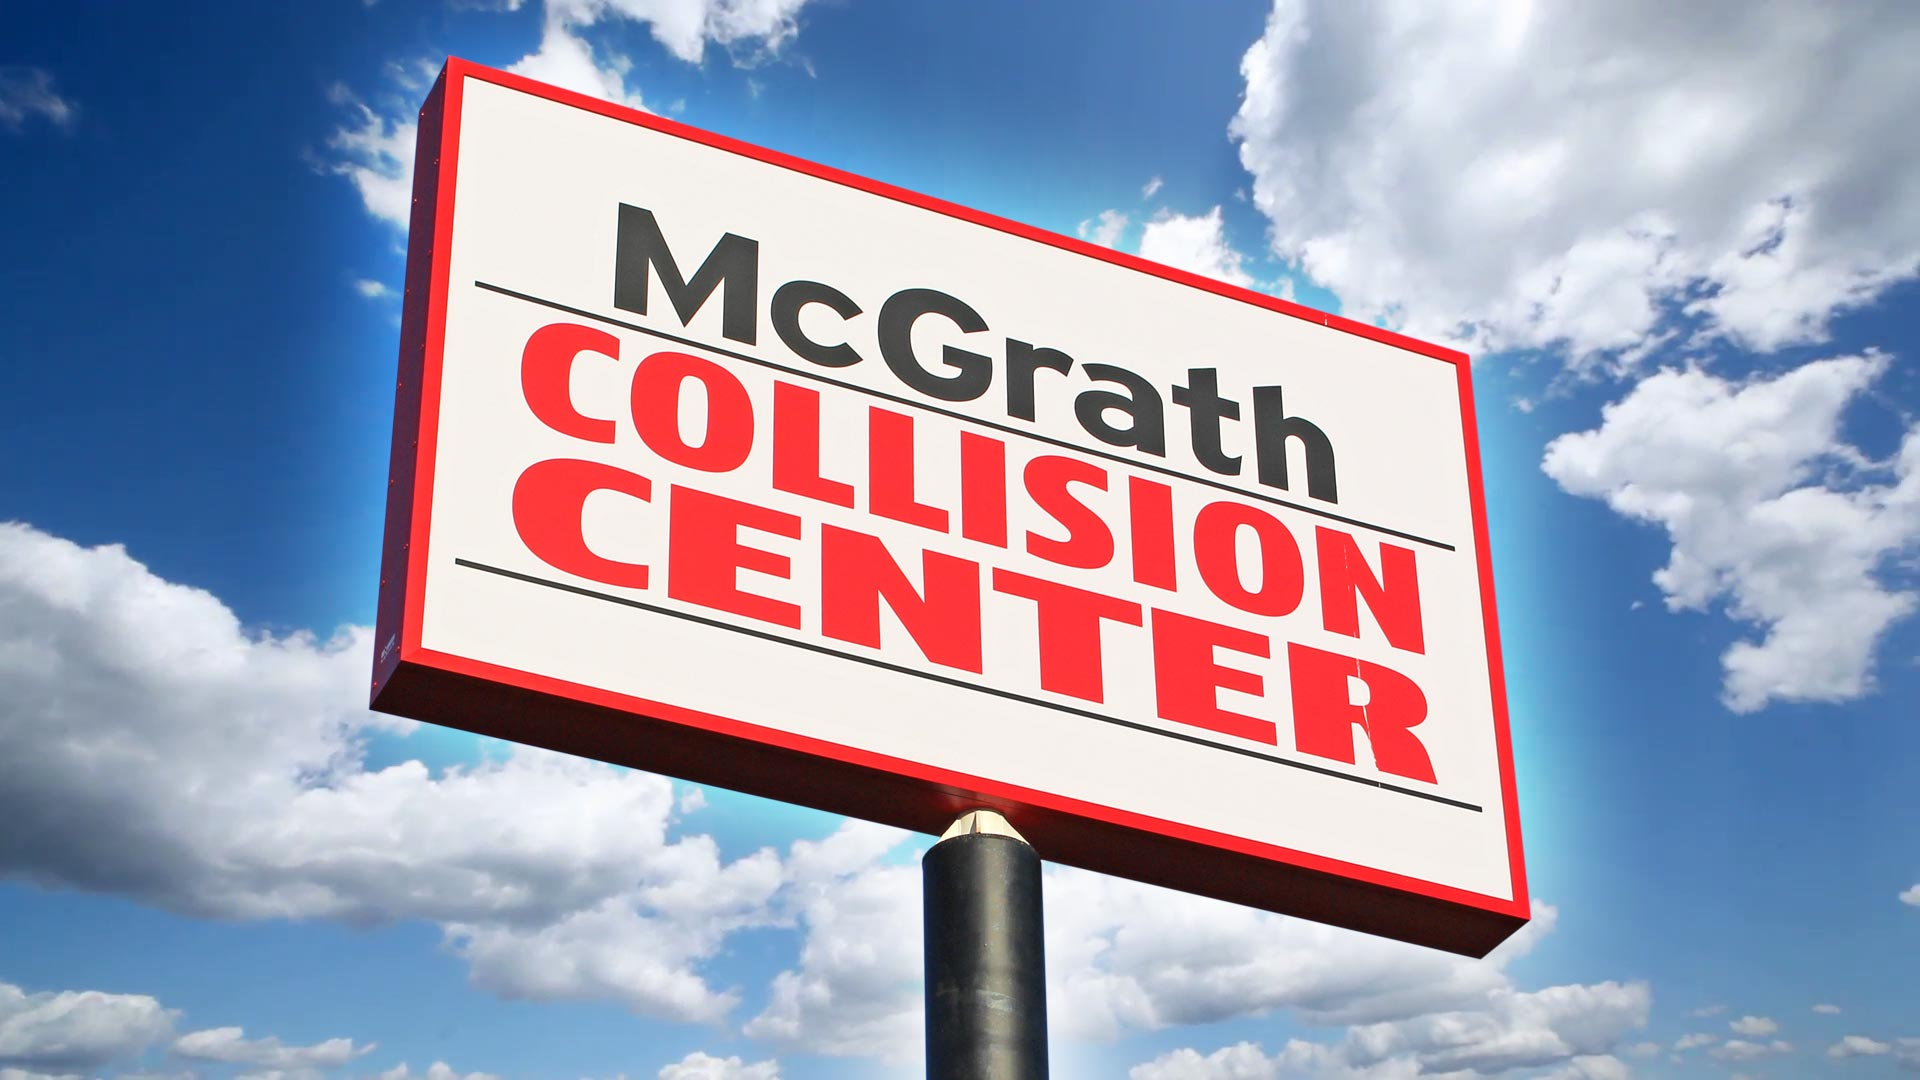 McGrath Collision